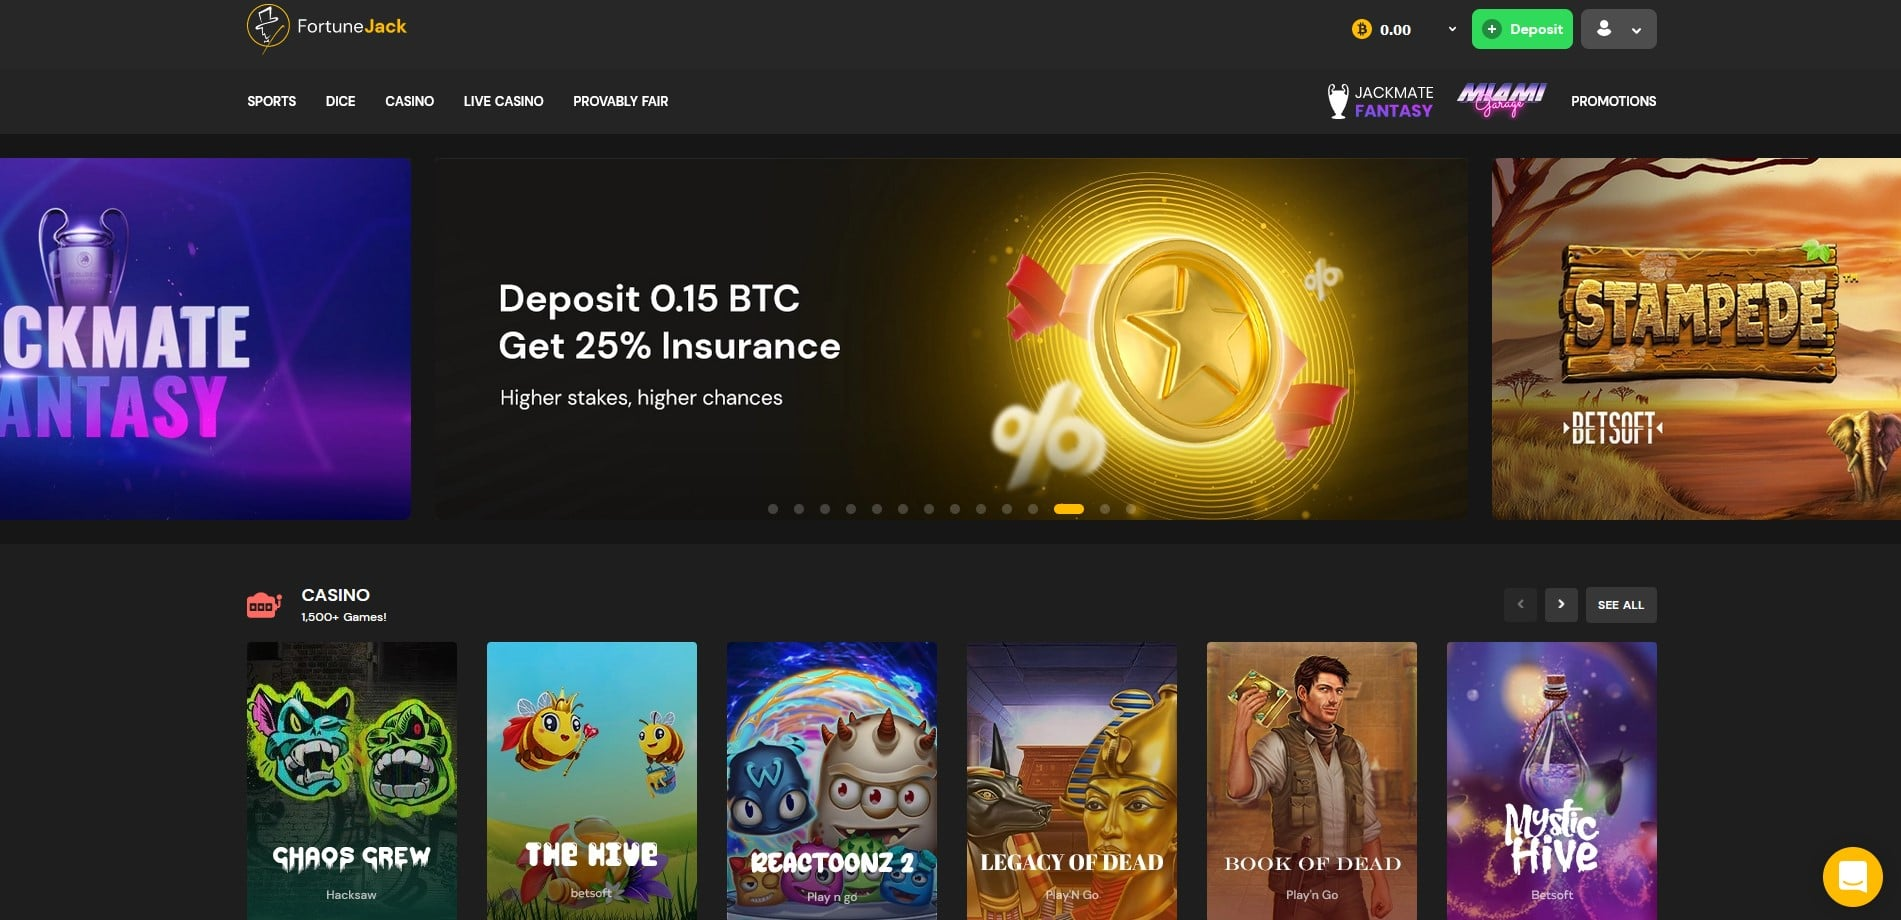 fortunejack main page